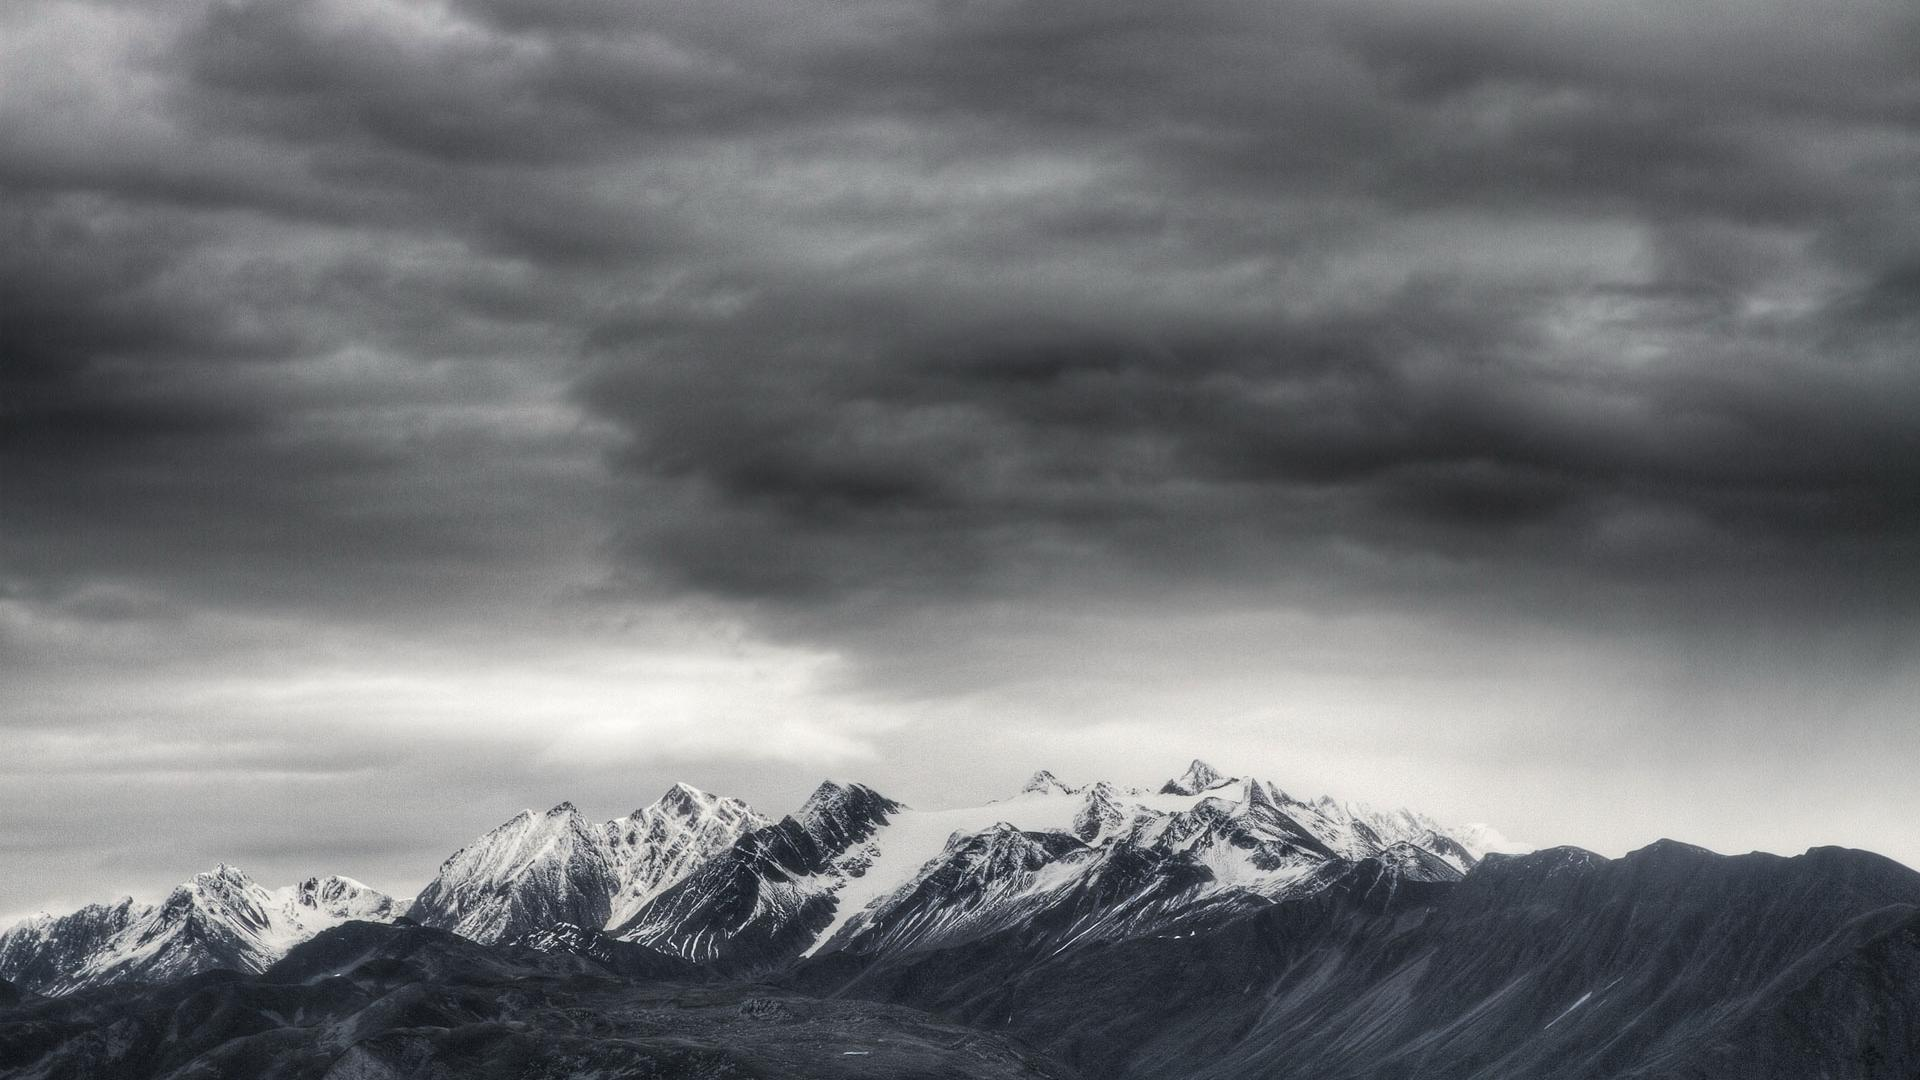 The Dark Clouds And Mountain Widescreen and HD background Wallpaper